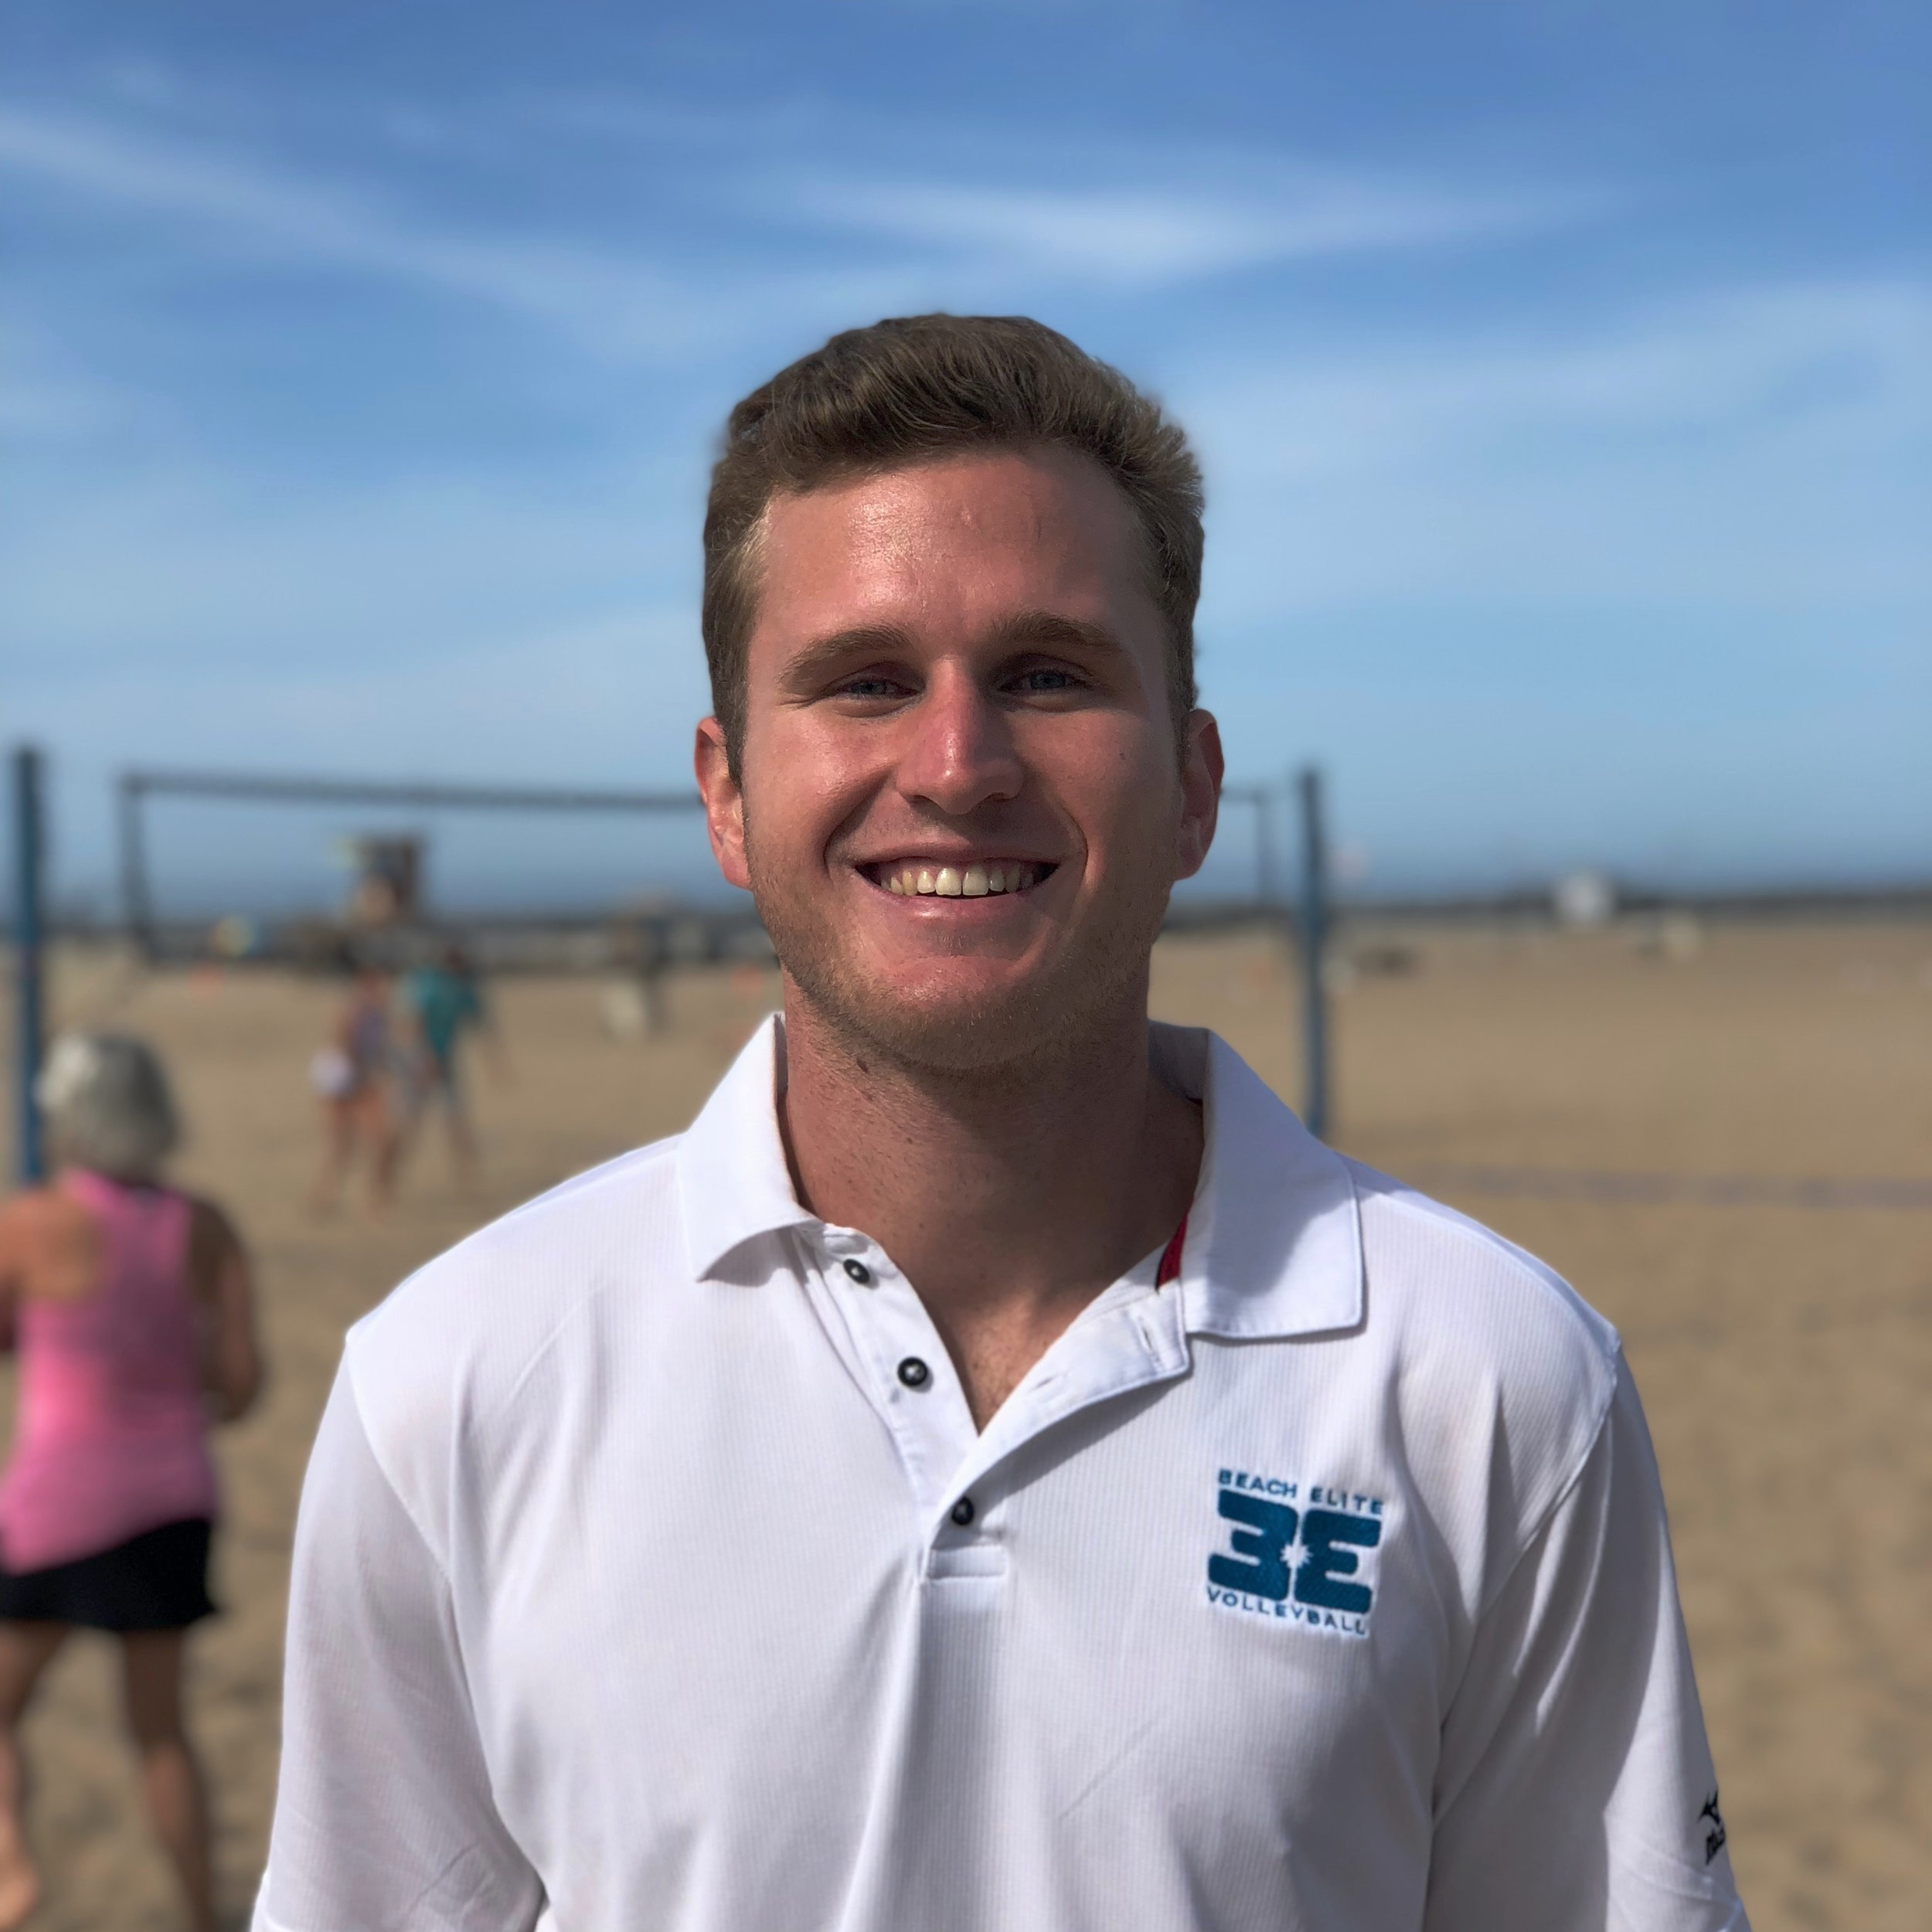 JACK STAFFORD - *April 2018-Present: Head Instructor - Newport Beach / Beach Elite Volleyball Classes*July 2010- Present: Head Coach at Balboa Bay Volleyball Club*July 2013- Present: Head Coach at Corona Del Mar High School*College: University of California Santa Barbara